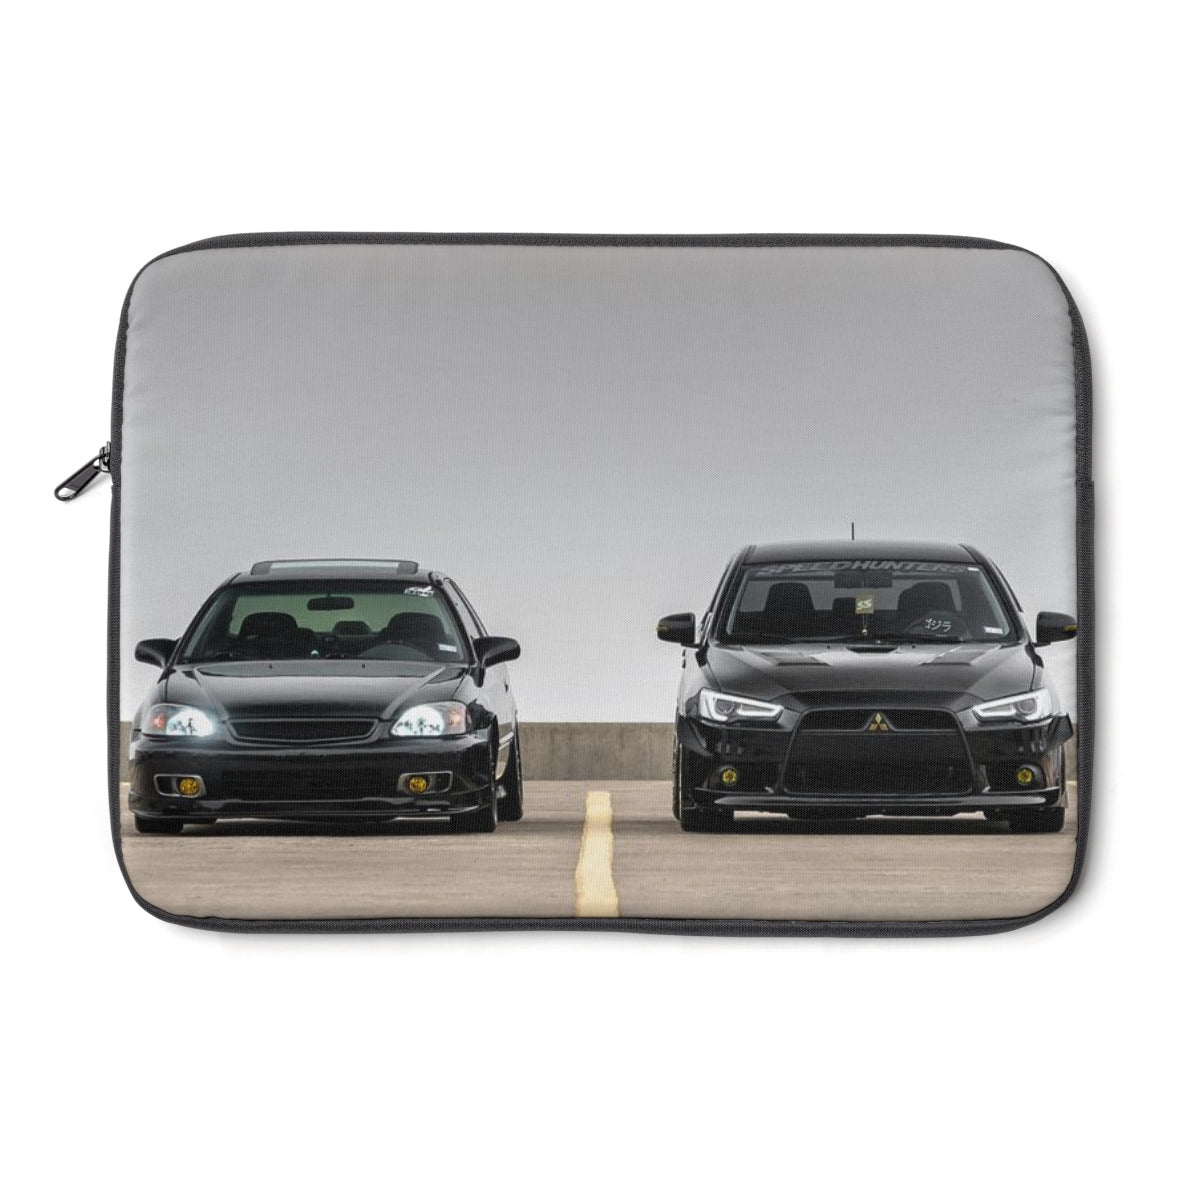 Battle of Black Cars Laptop Sleeve